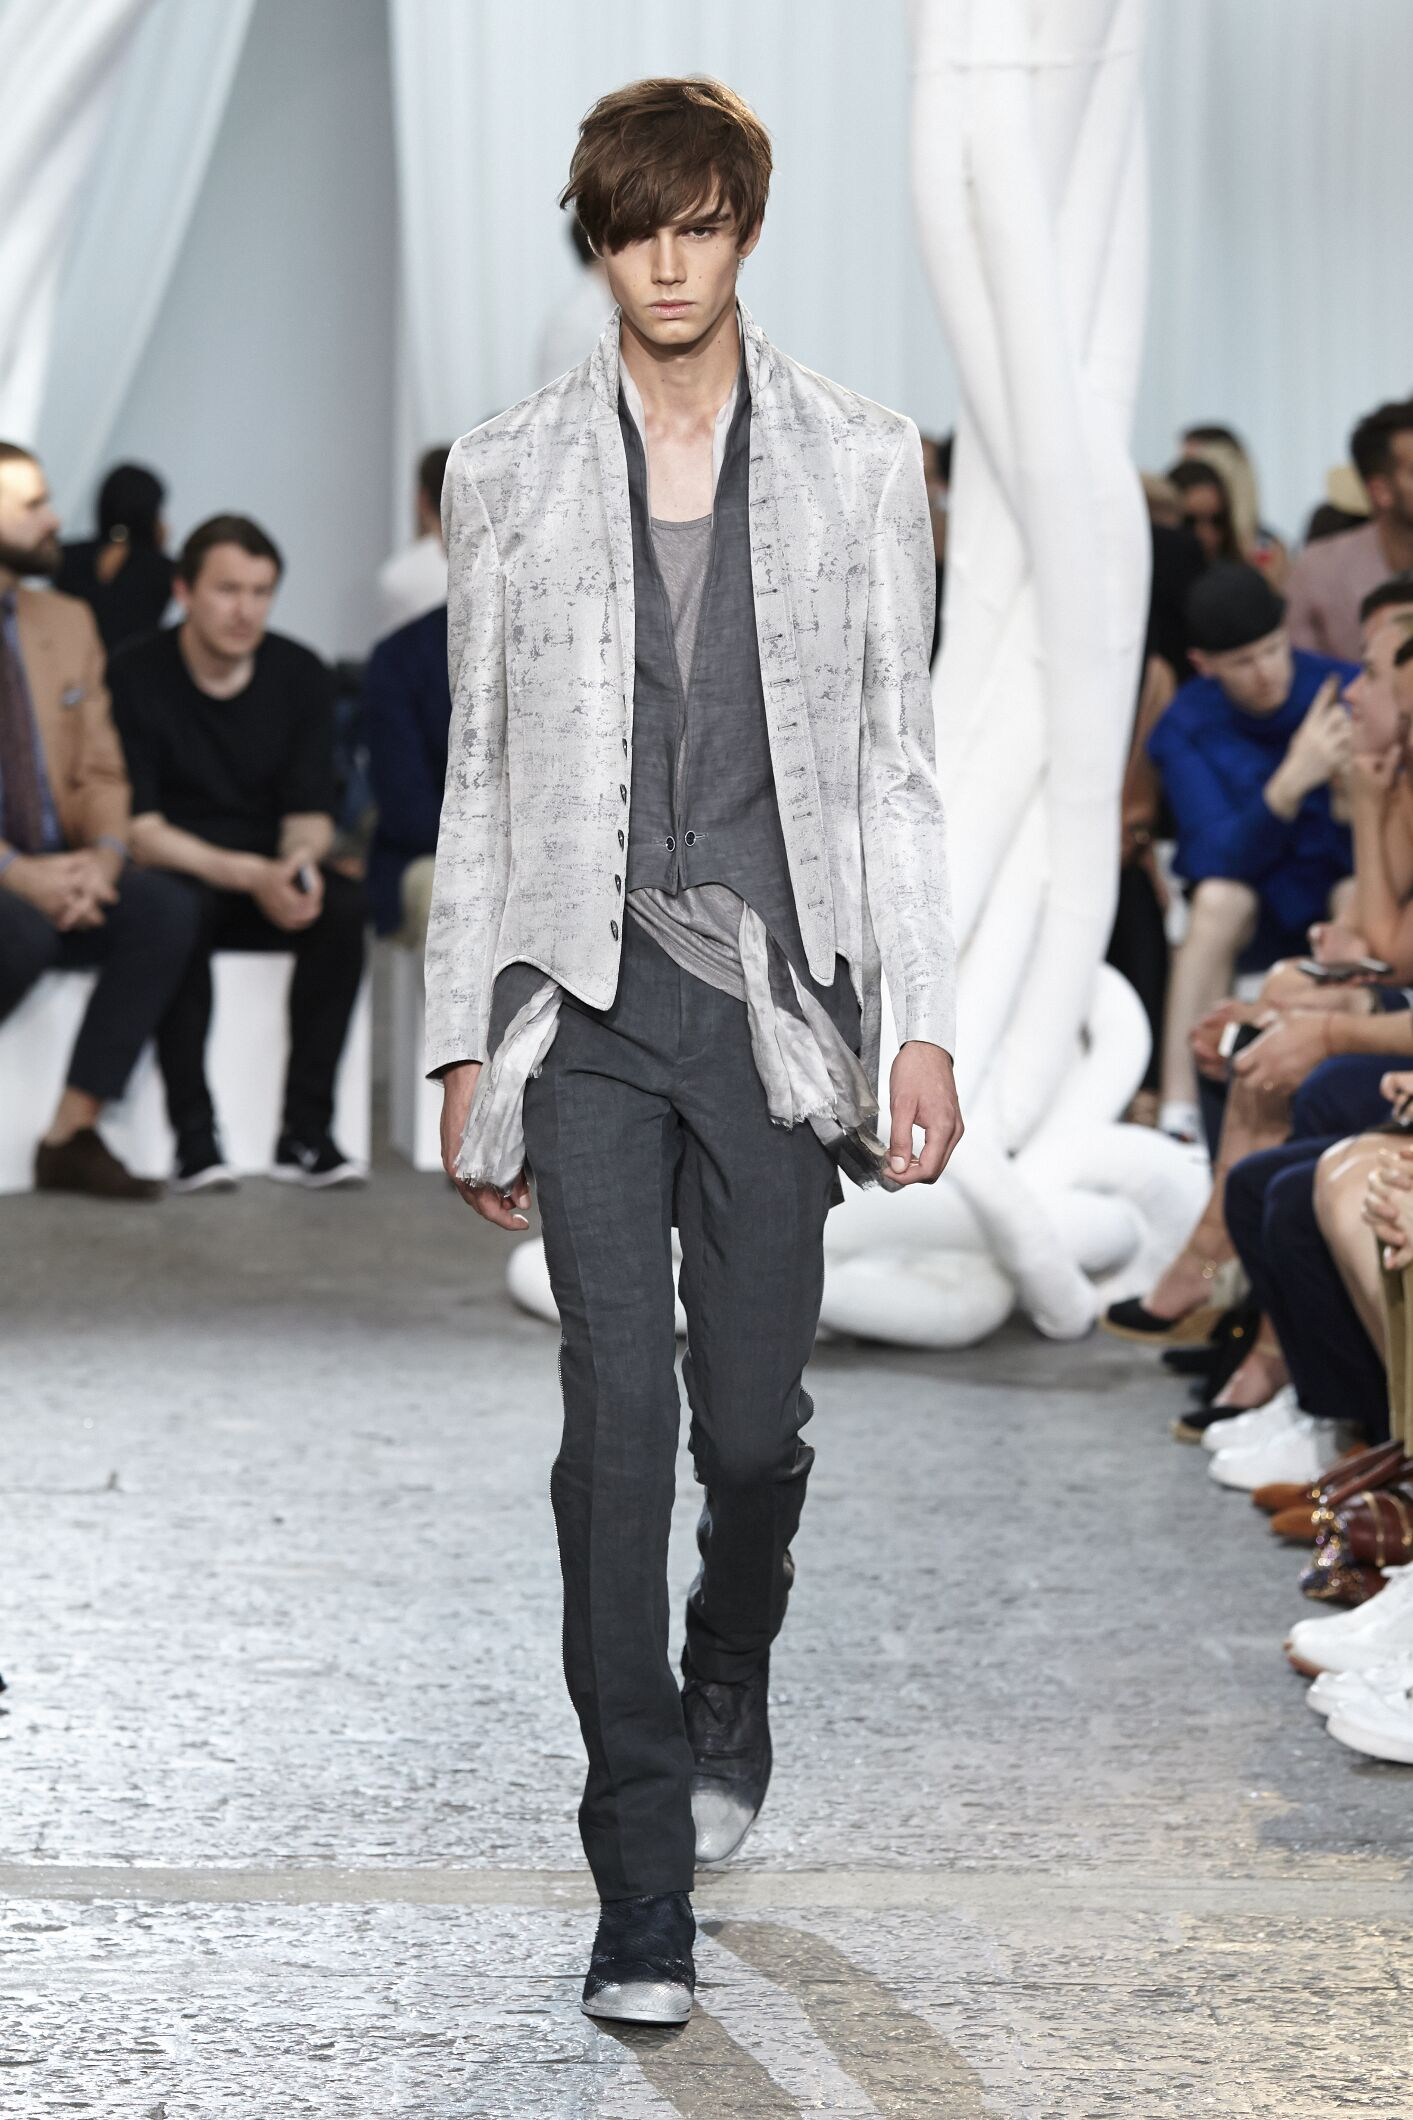 John Varvatos Man Milan Fashion Week